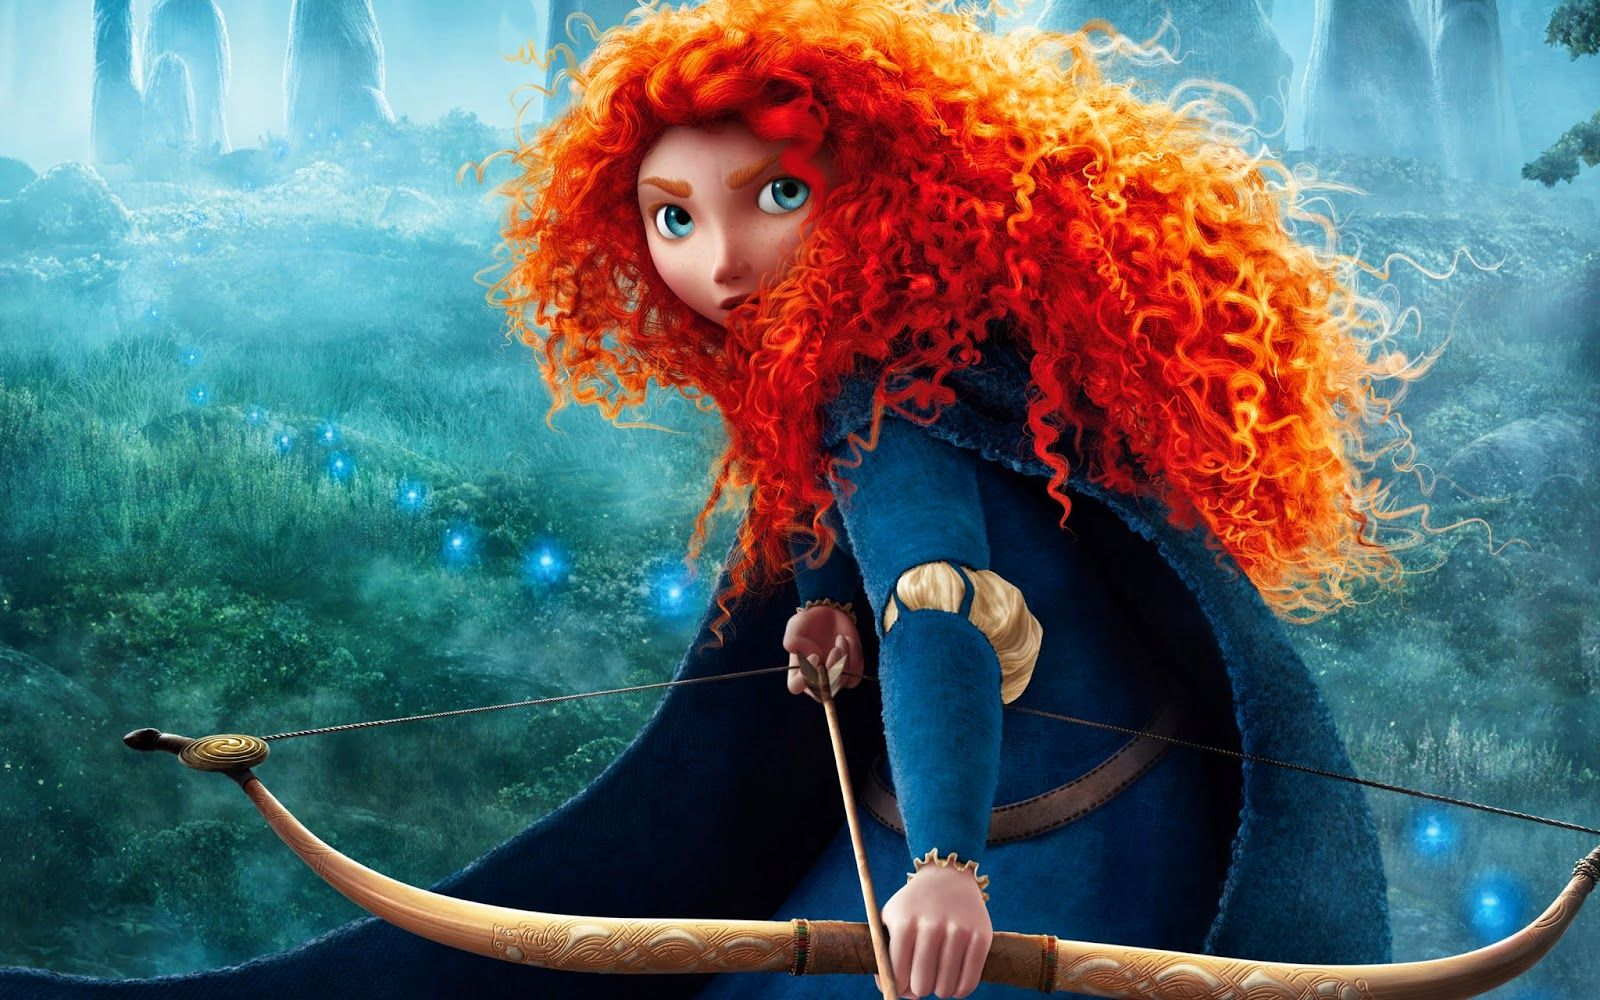 See Even Disney Princesses Have Curly Hair Haha D Curlsarein Disney Brave Merida Disney Brave Movie